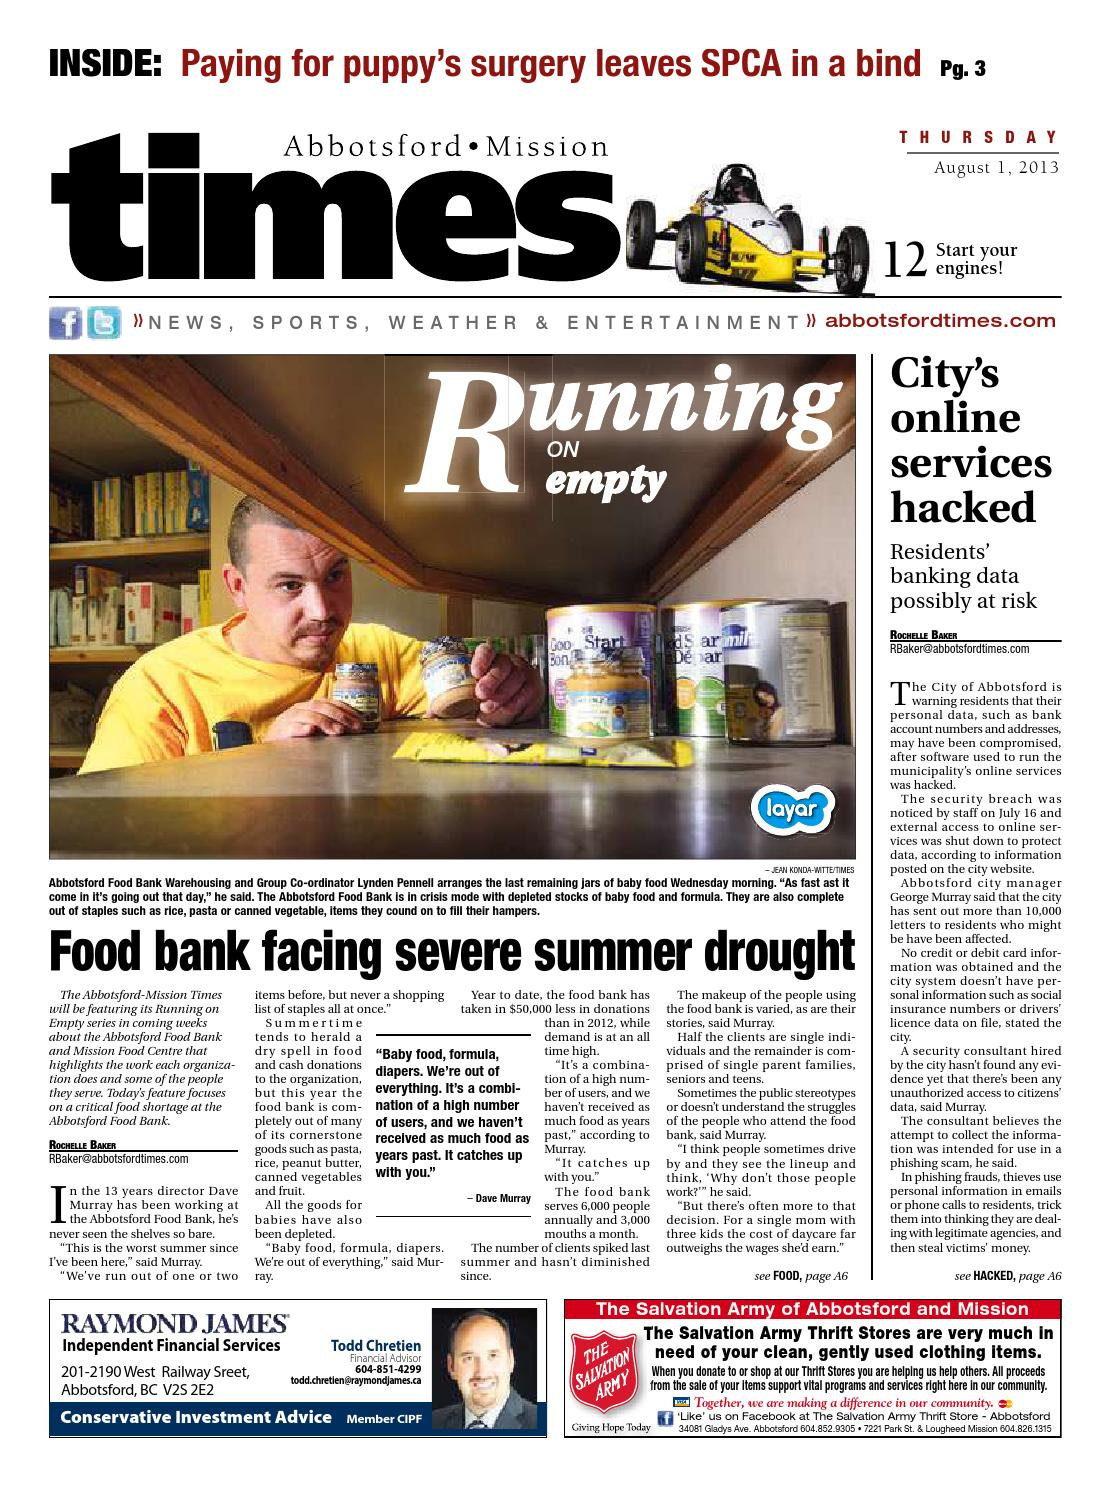 Abbotsford Times - August 1, 2013 by Abbotsford Times - issuu